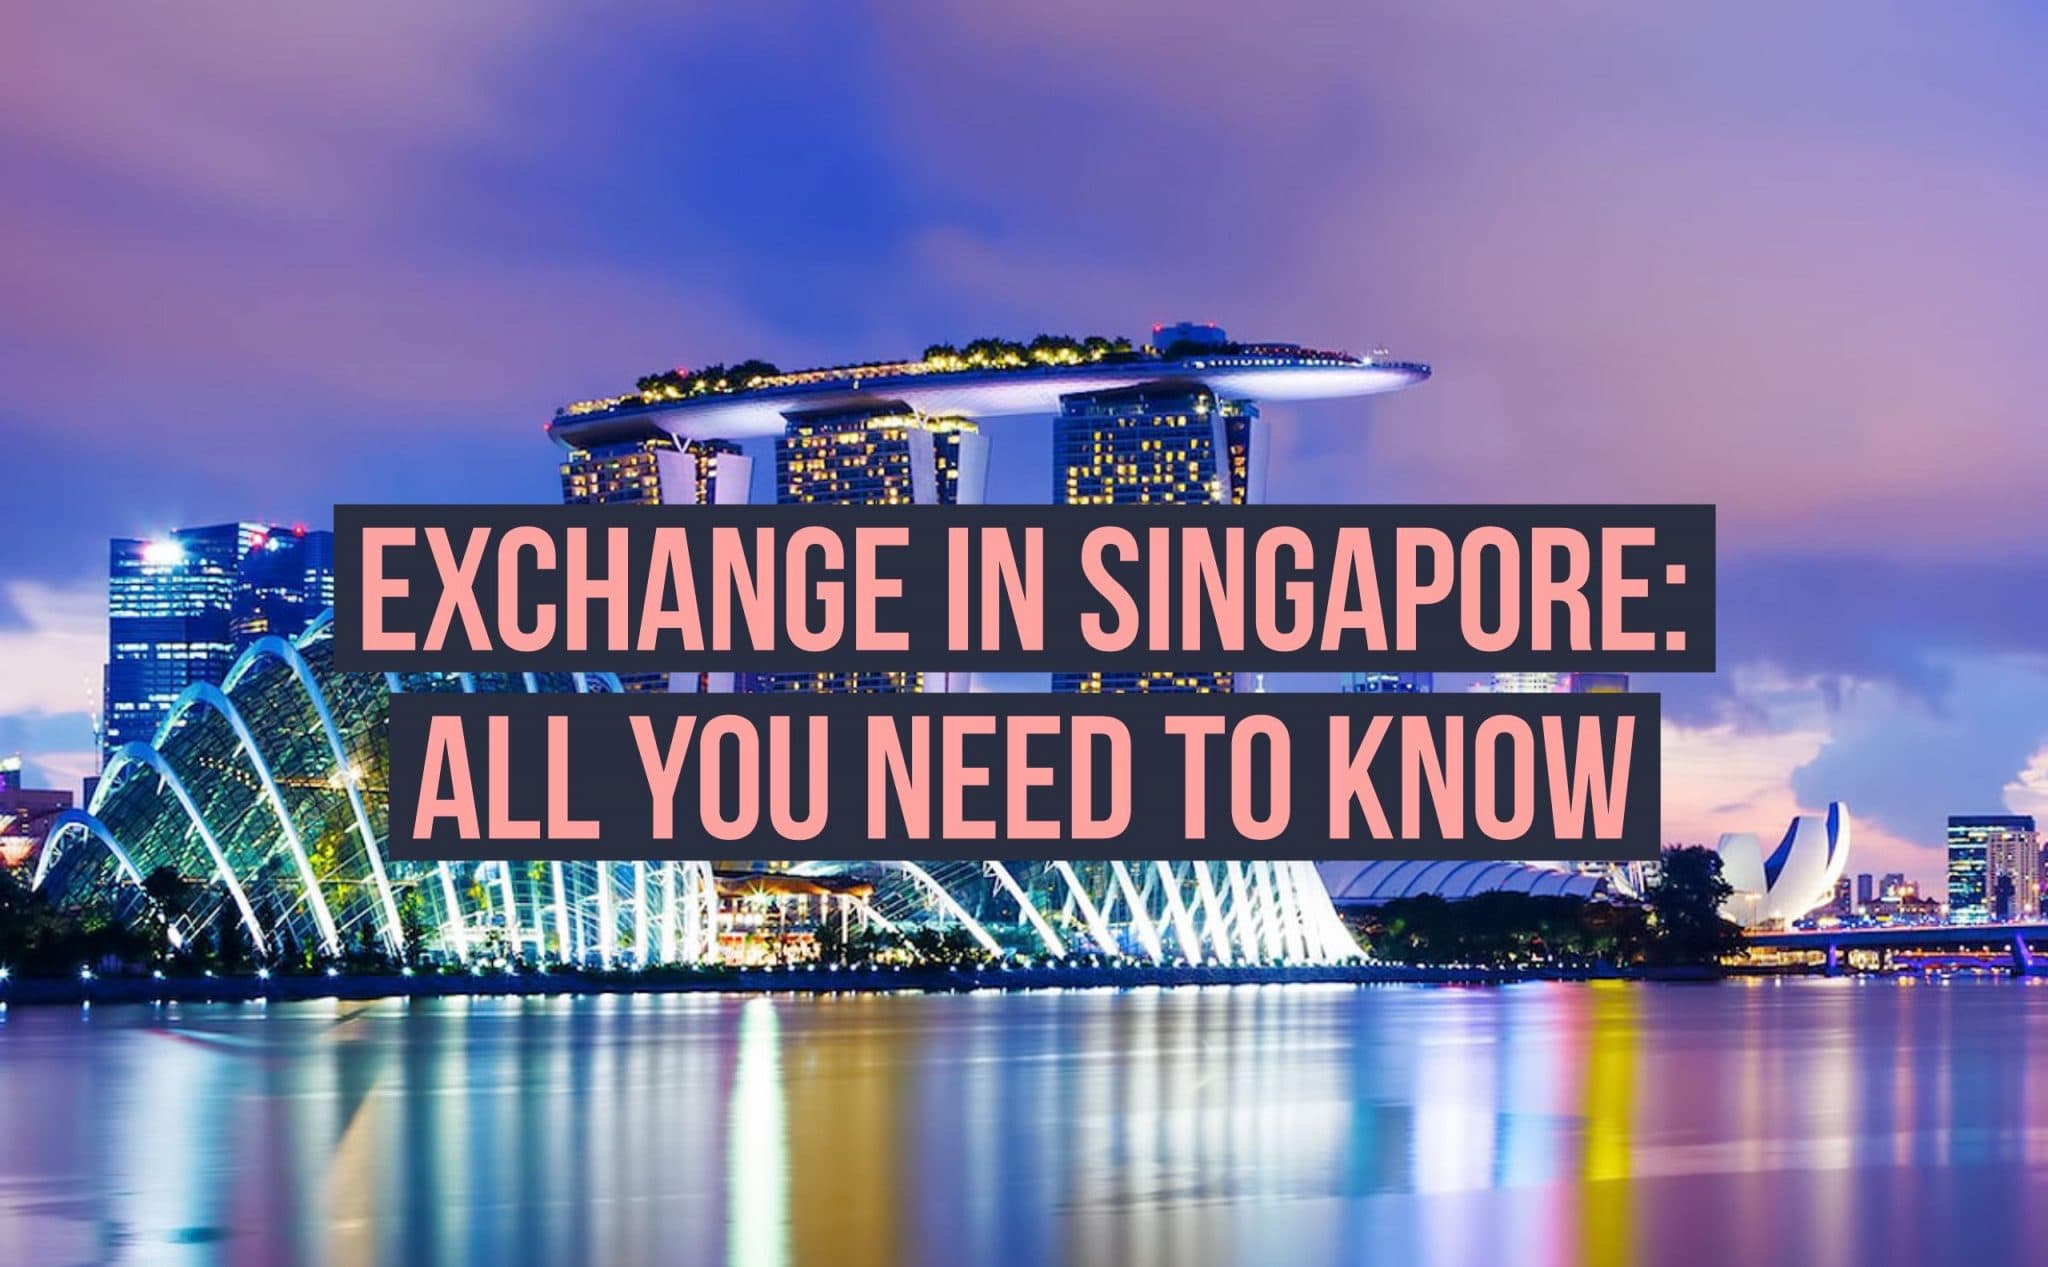 Your ULTIMATE GUIDE To An Exchange In Singapore